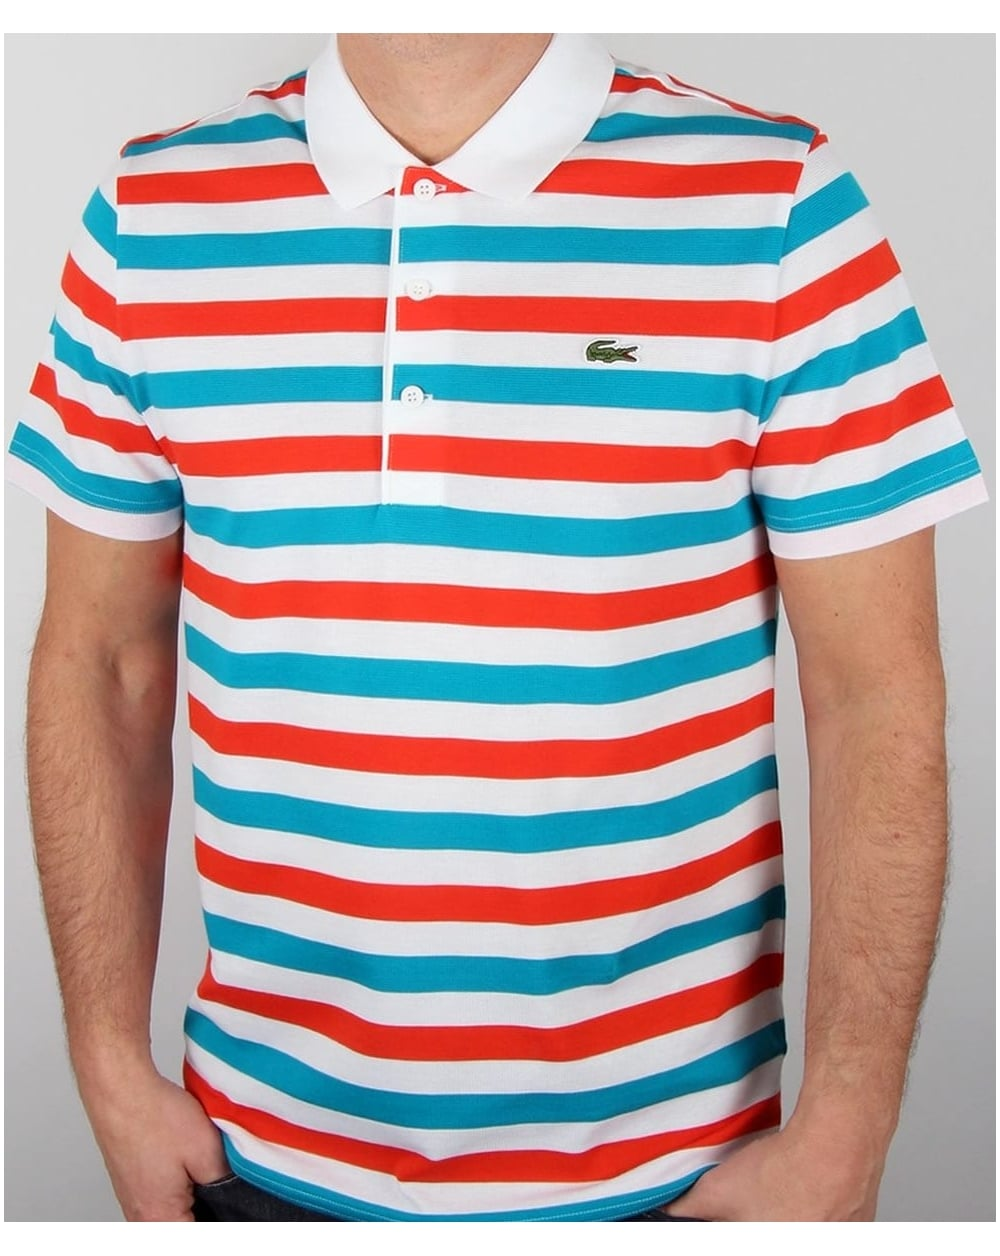 Lacoste fine stripe polo shirt white red blue men 39 s top for Red white striped polo shirt